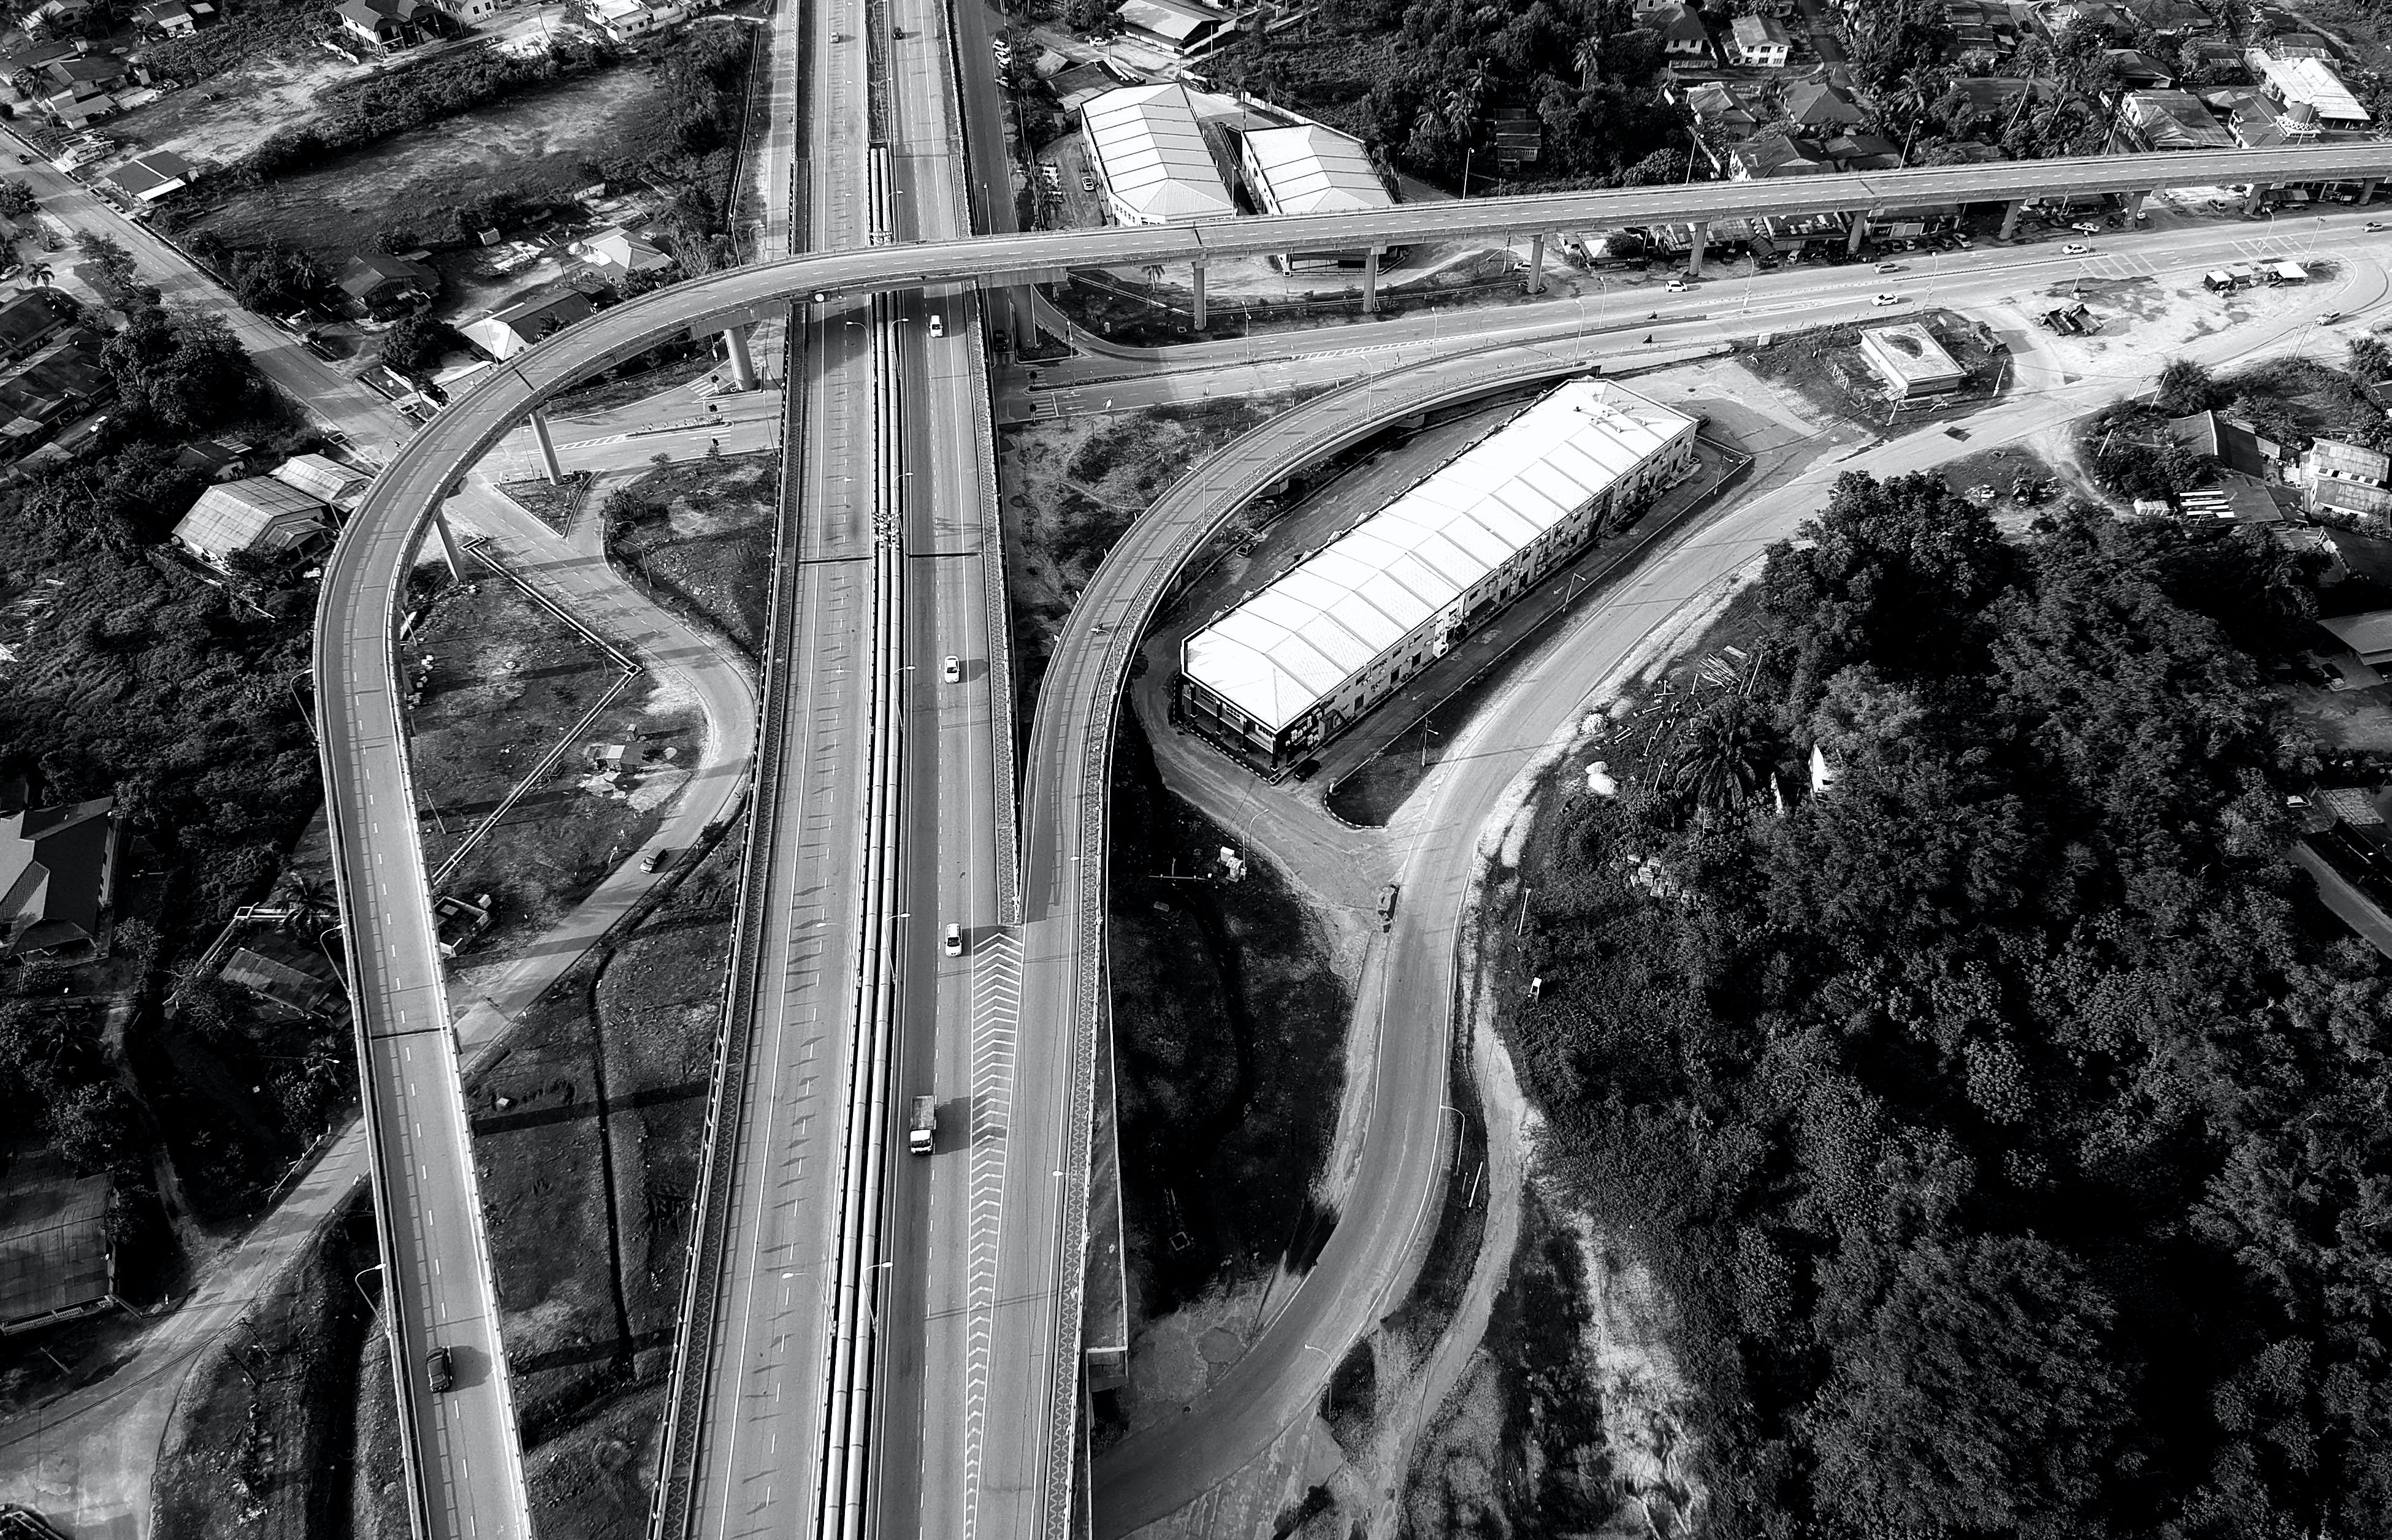 Grayscale Top View Photography of Roads Near Trees